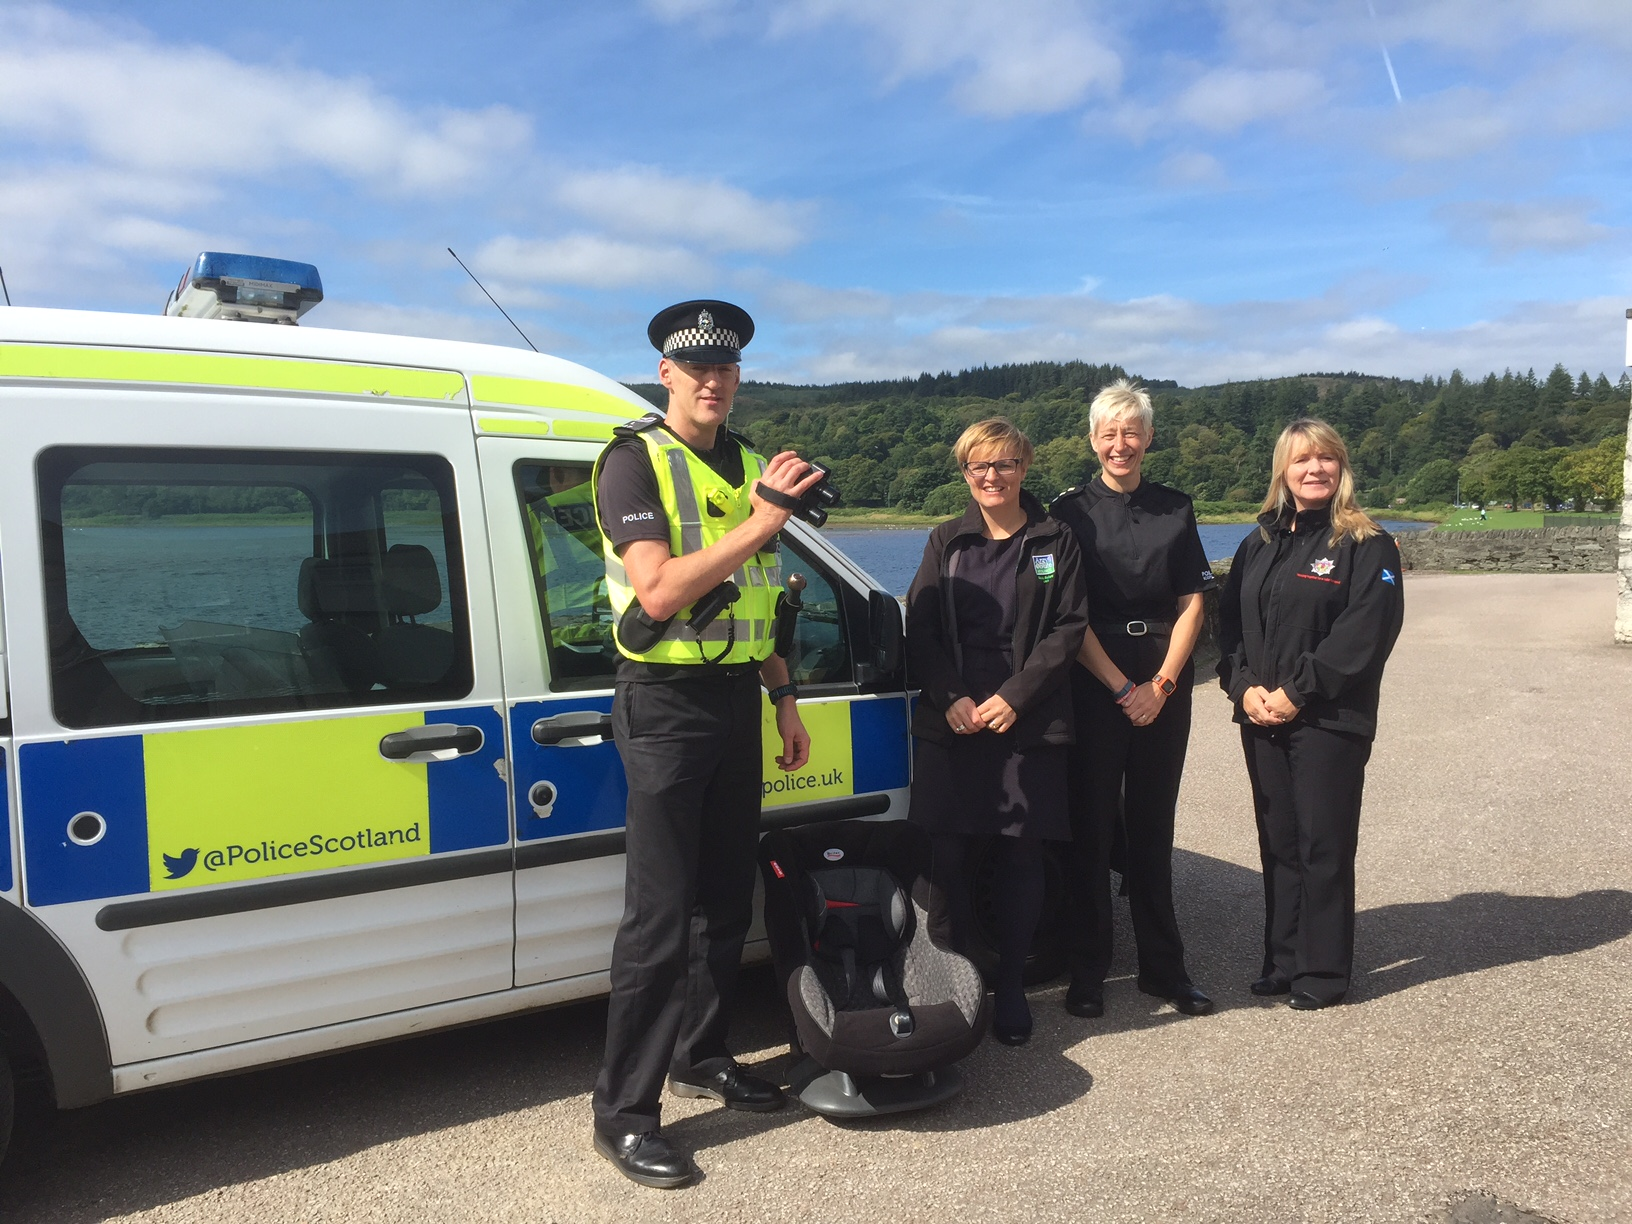 Fire service backing Police Scotland in rural road safety initiative in Argyll & Bute